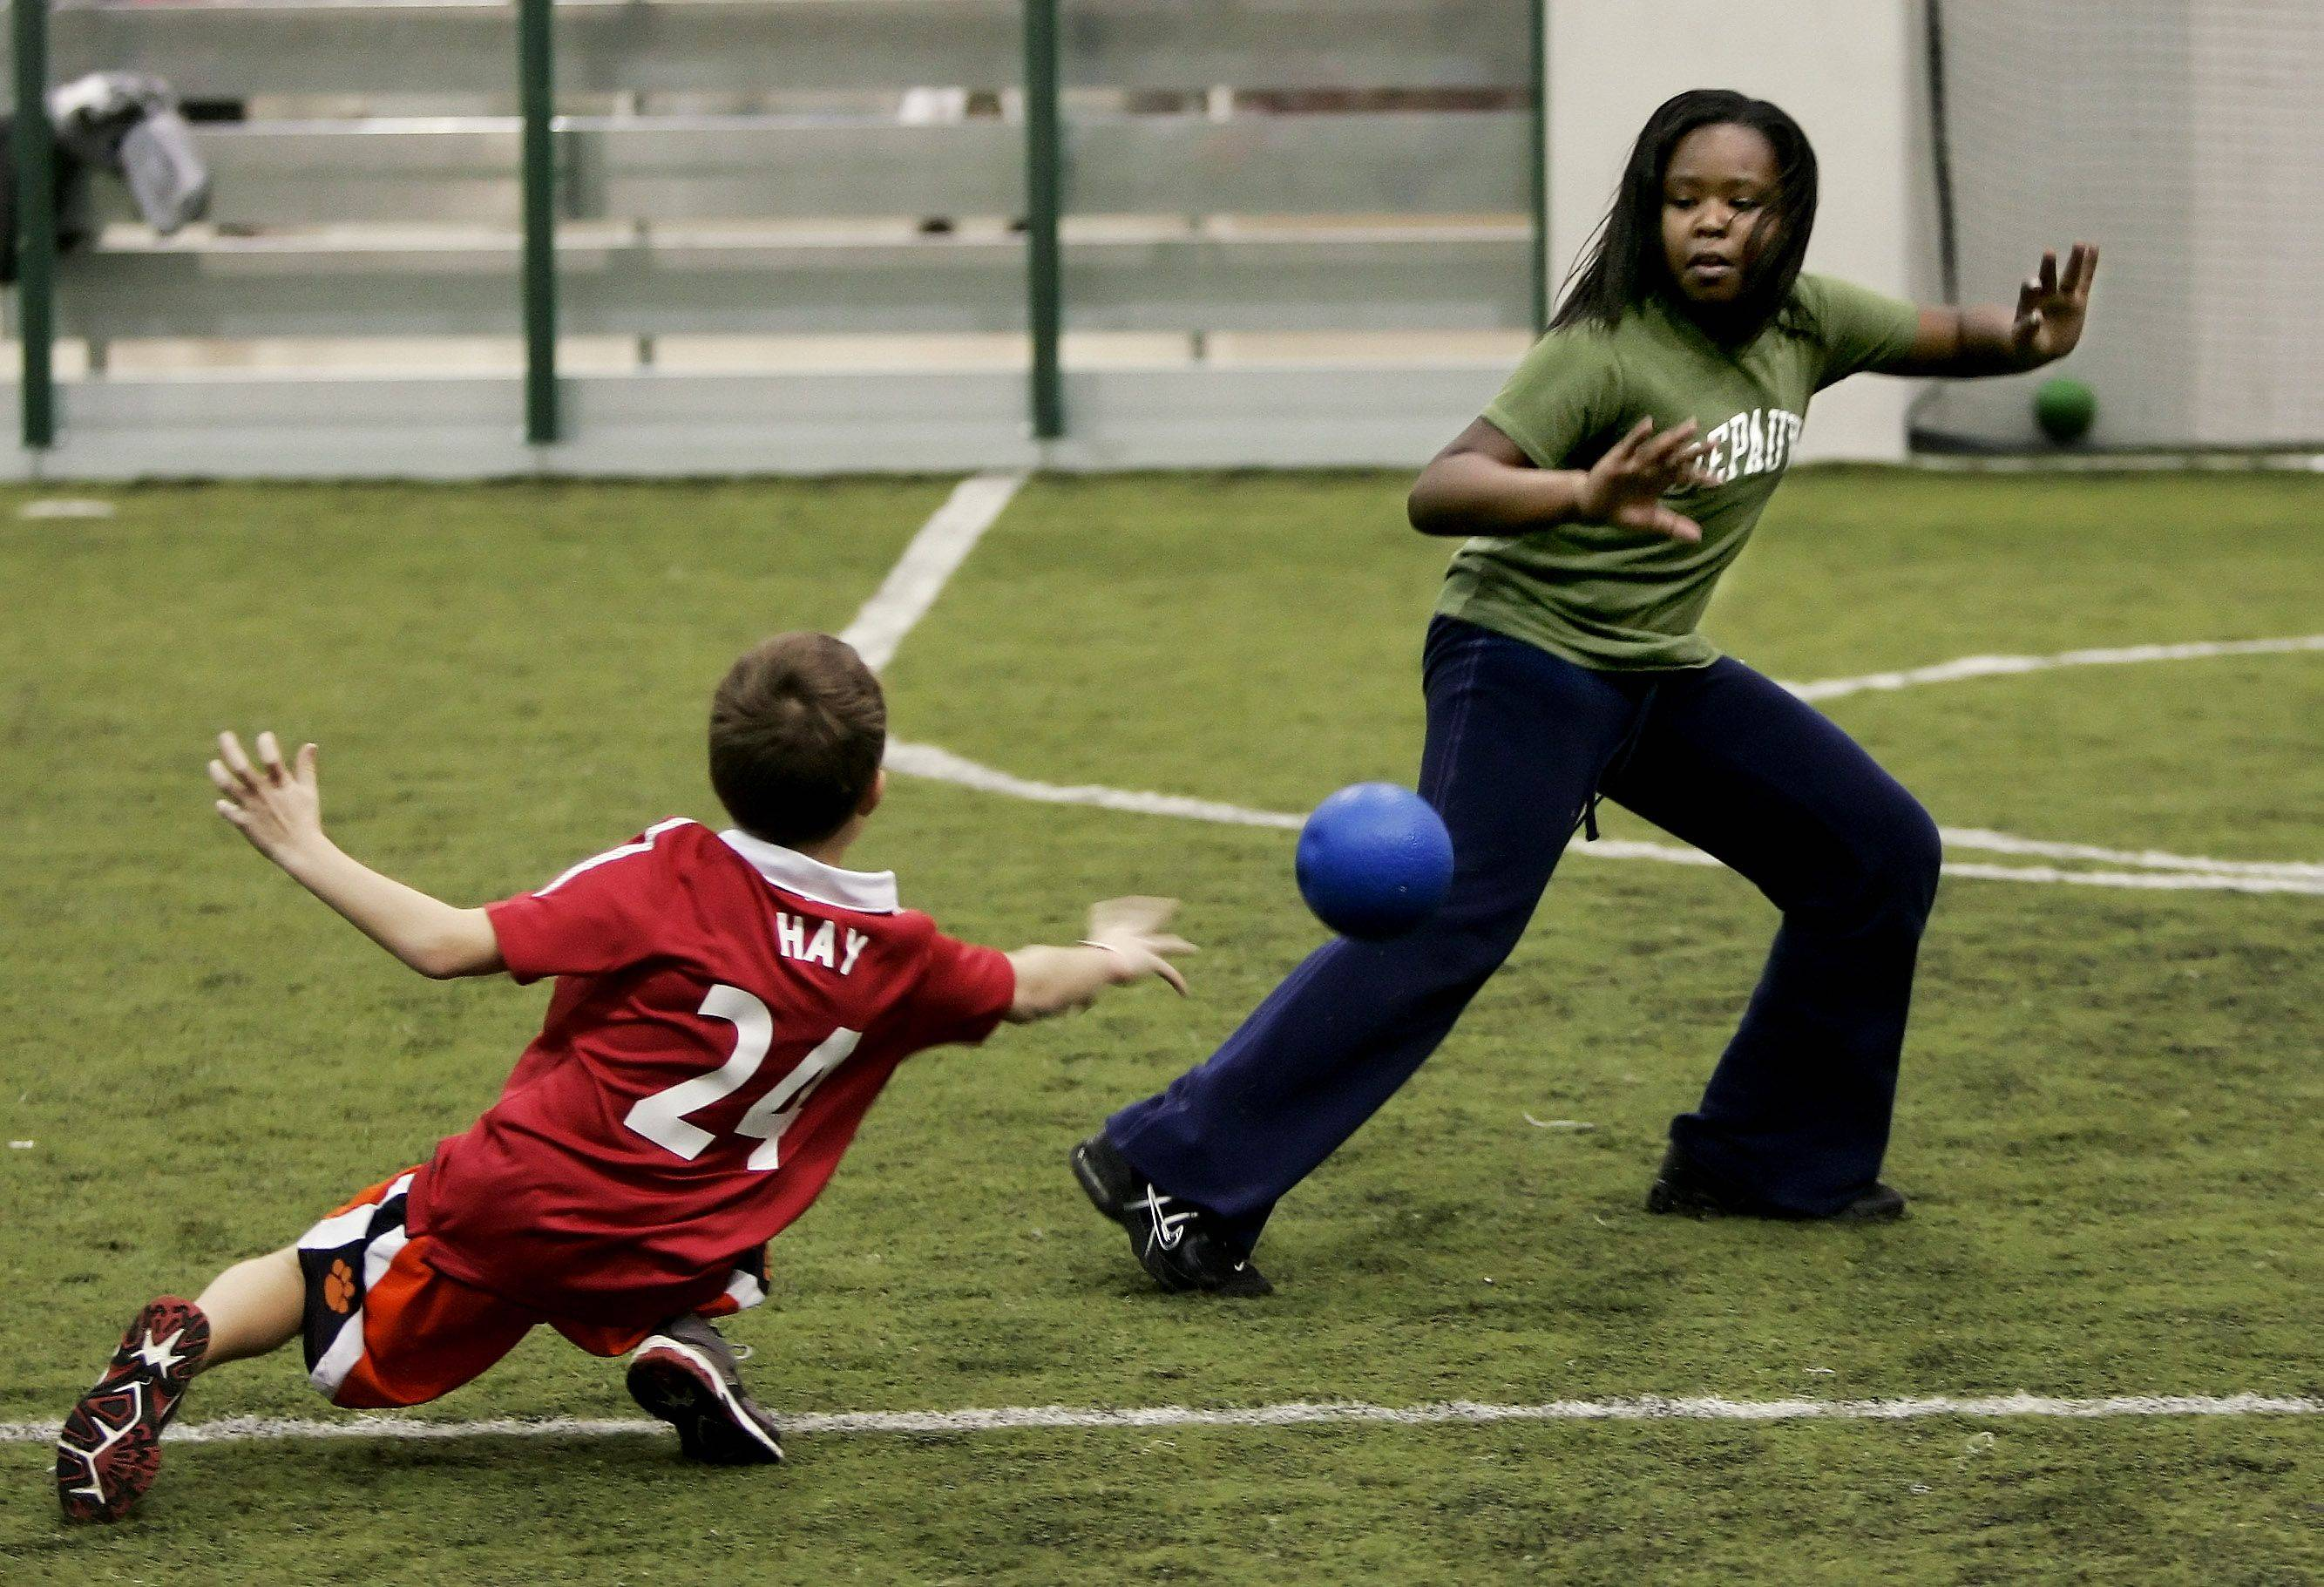 Chelsea Eppinger, 11, of Gurnee tries to avoid the throw of another player during dodgeball at the Libertyville Sports Complex. Experts say exercise is important in combating disease and keeping a positive attitude.